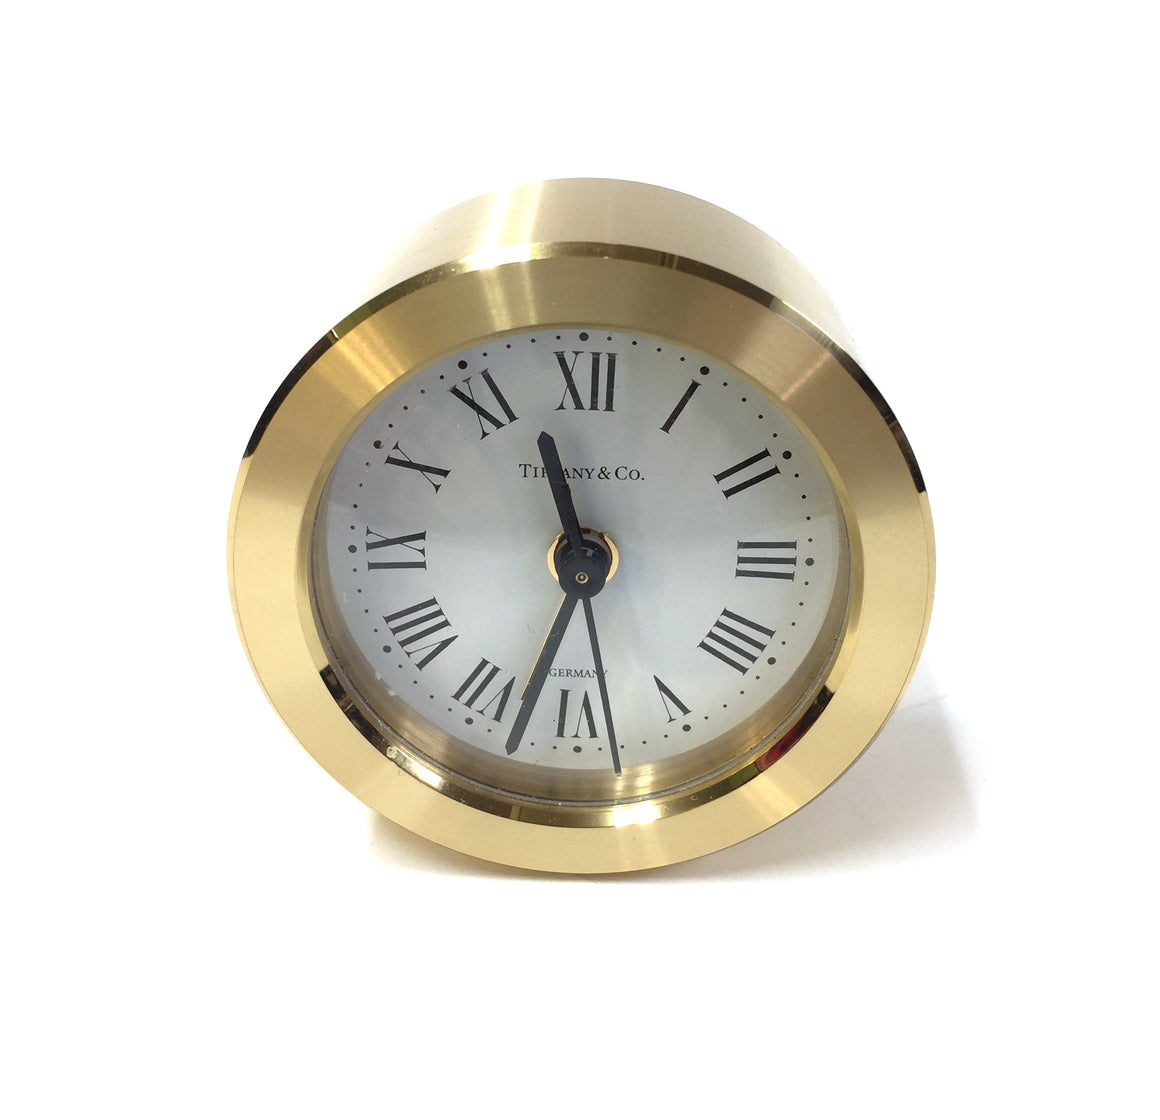 TIFFANY & CO. Brushed Brass Roman Numerals Round Desk/Alarm Clock